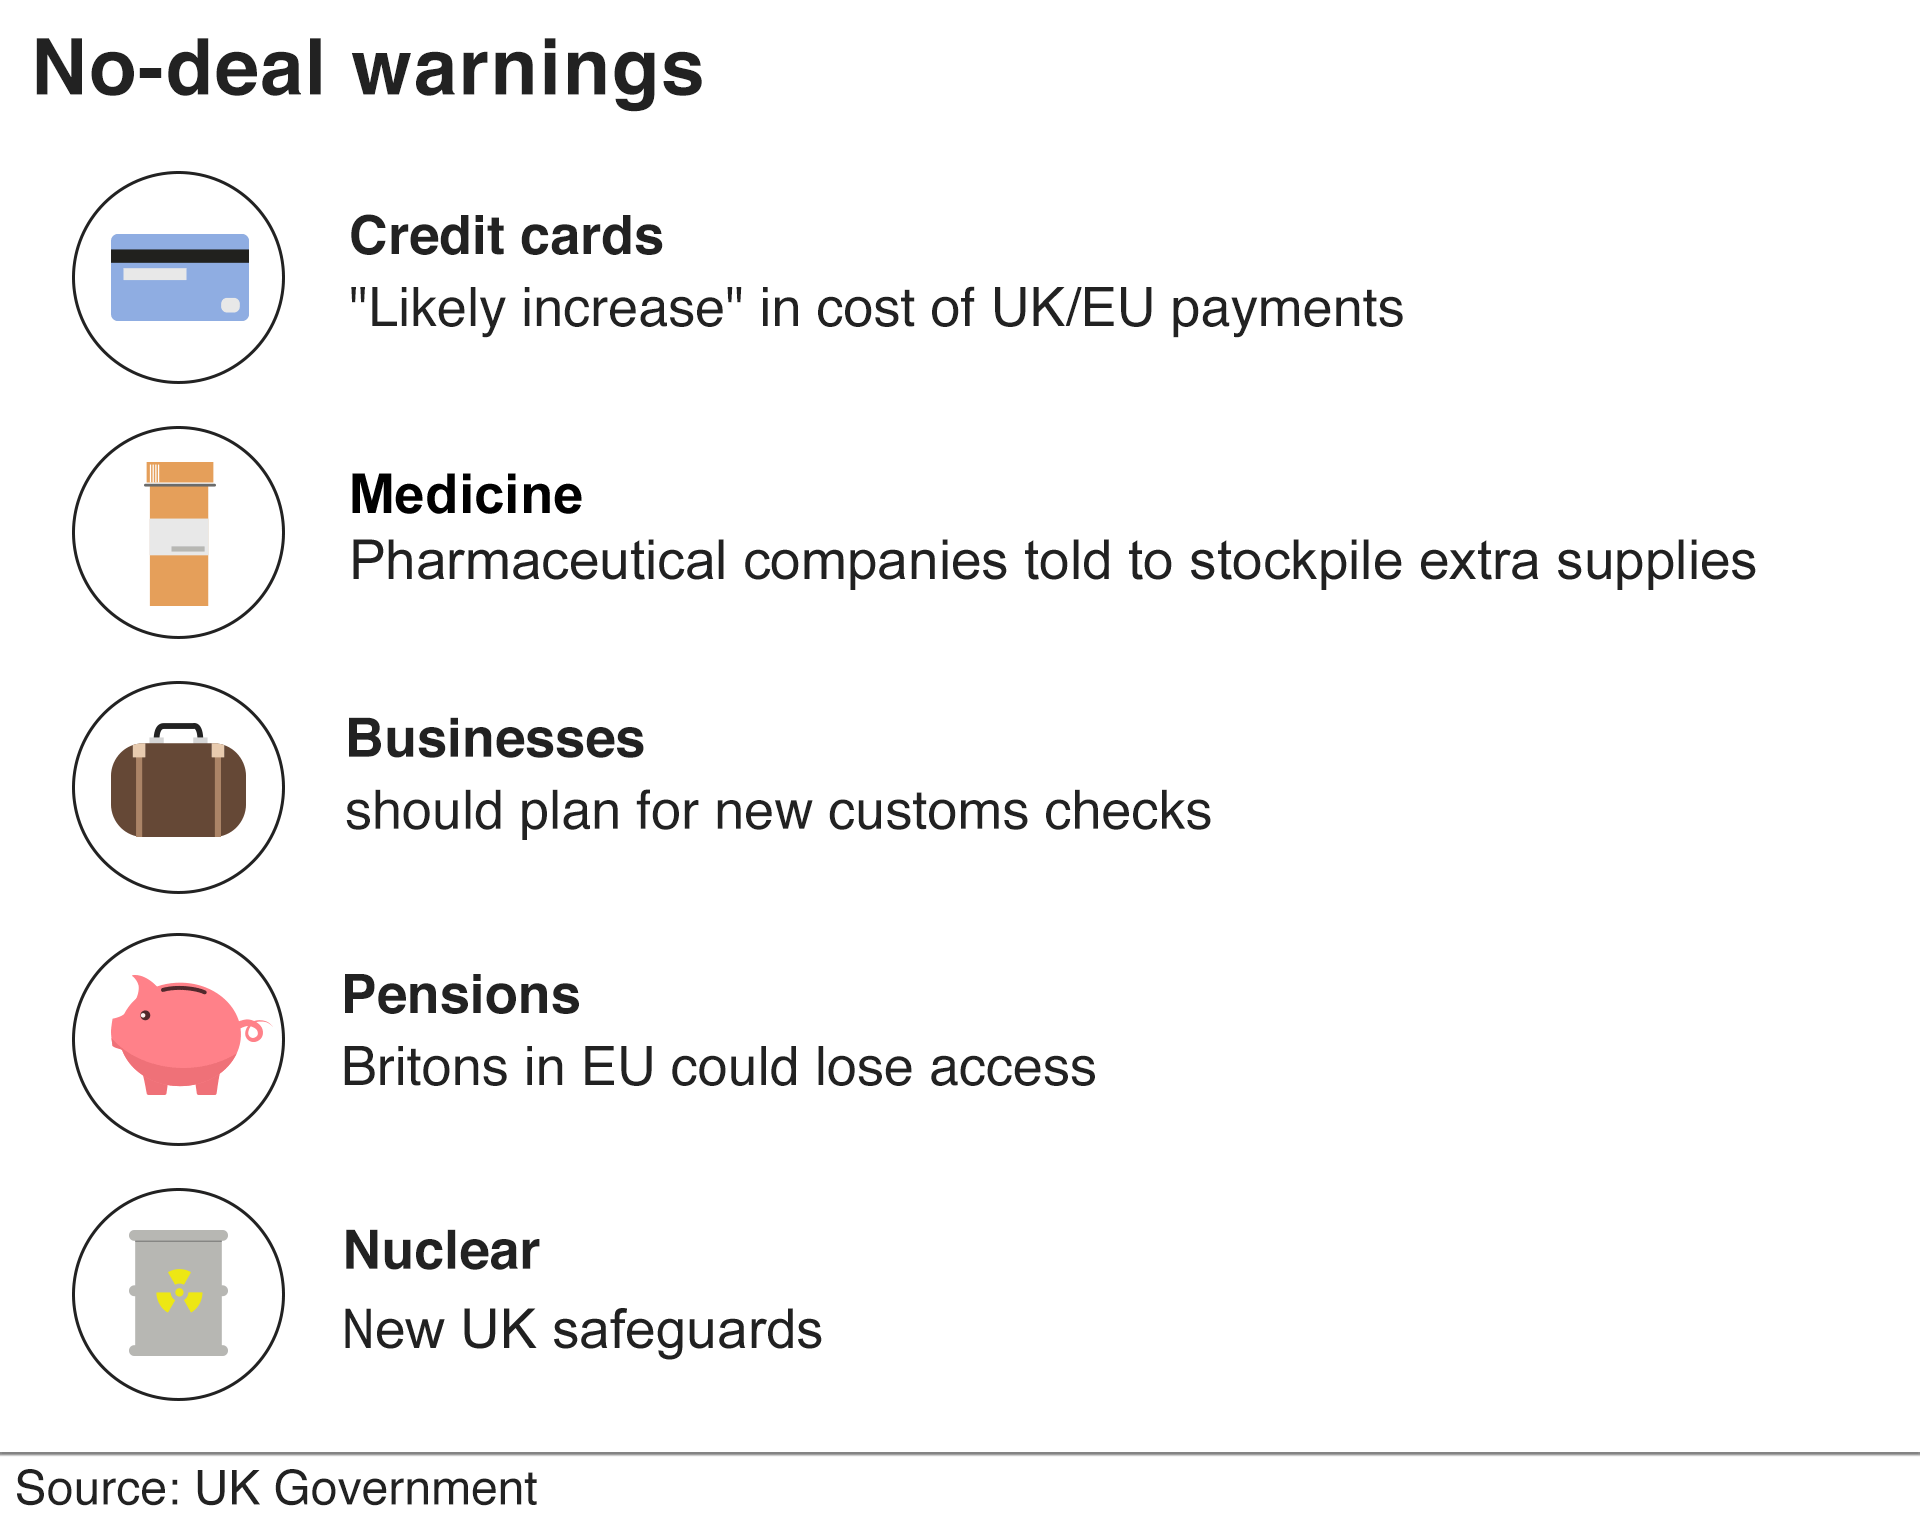 UK's 'no-deal' Brexit plans warn of credit card fees - BBC News